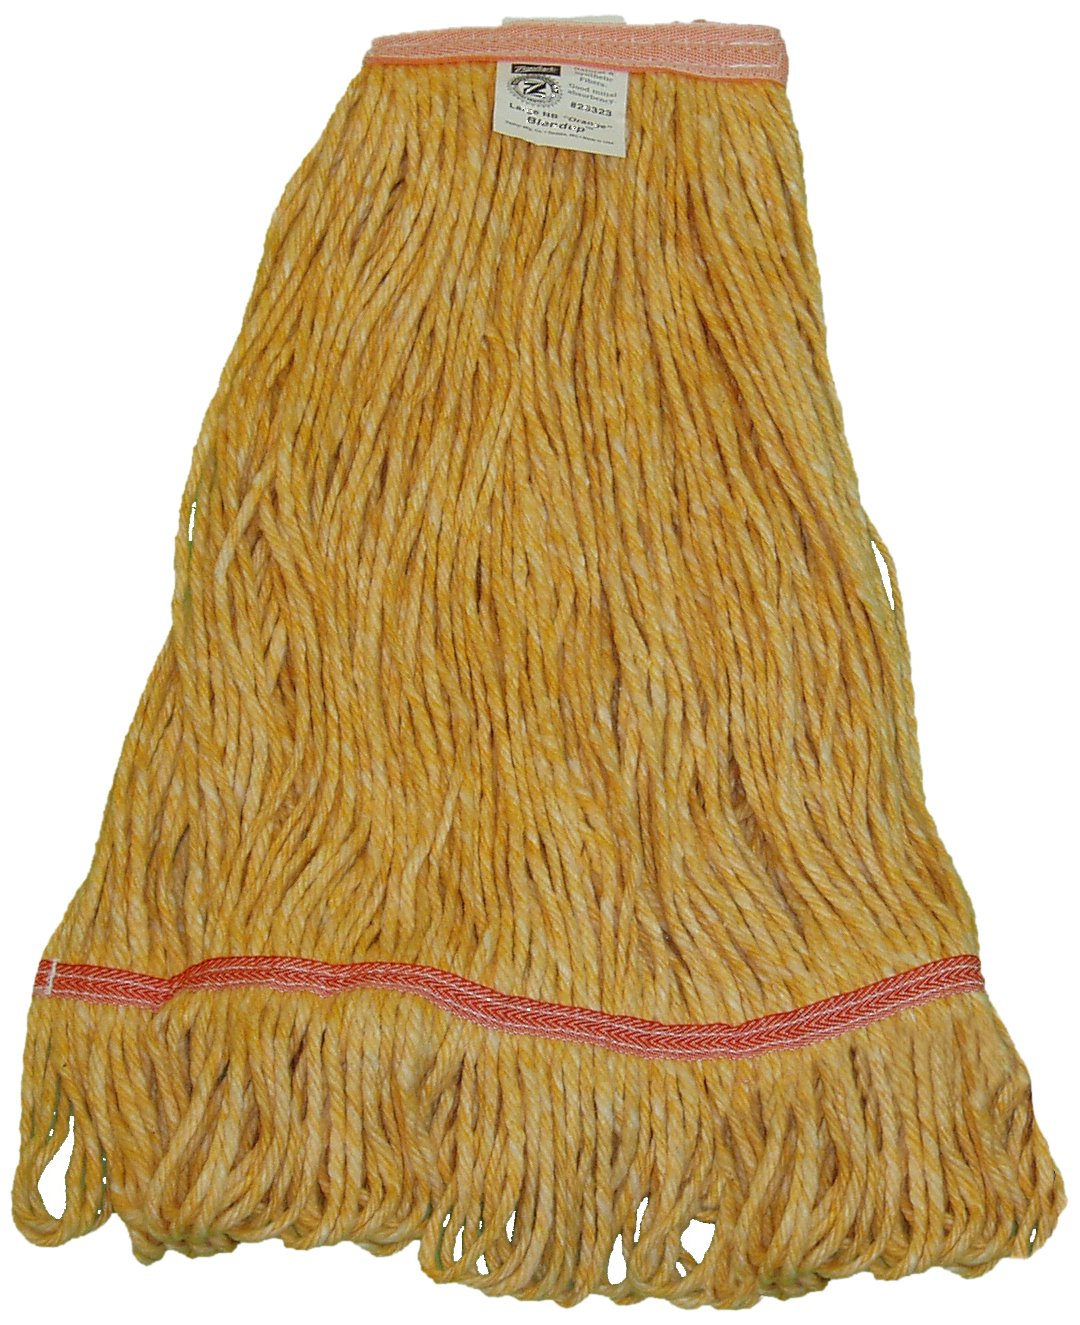 Zephyr 26324 Blendup Orange Blended Natural and Synthetic Fibers X-Large Loop Mop Head with 1-1/4